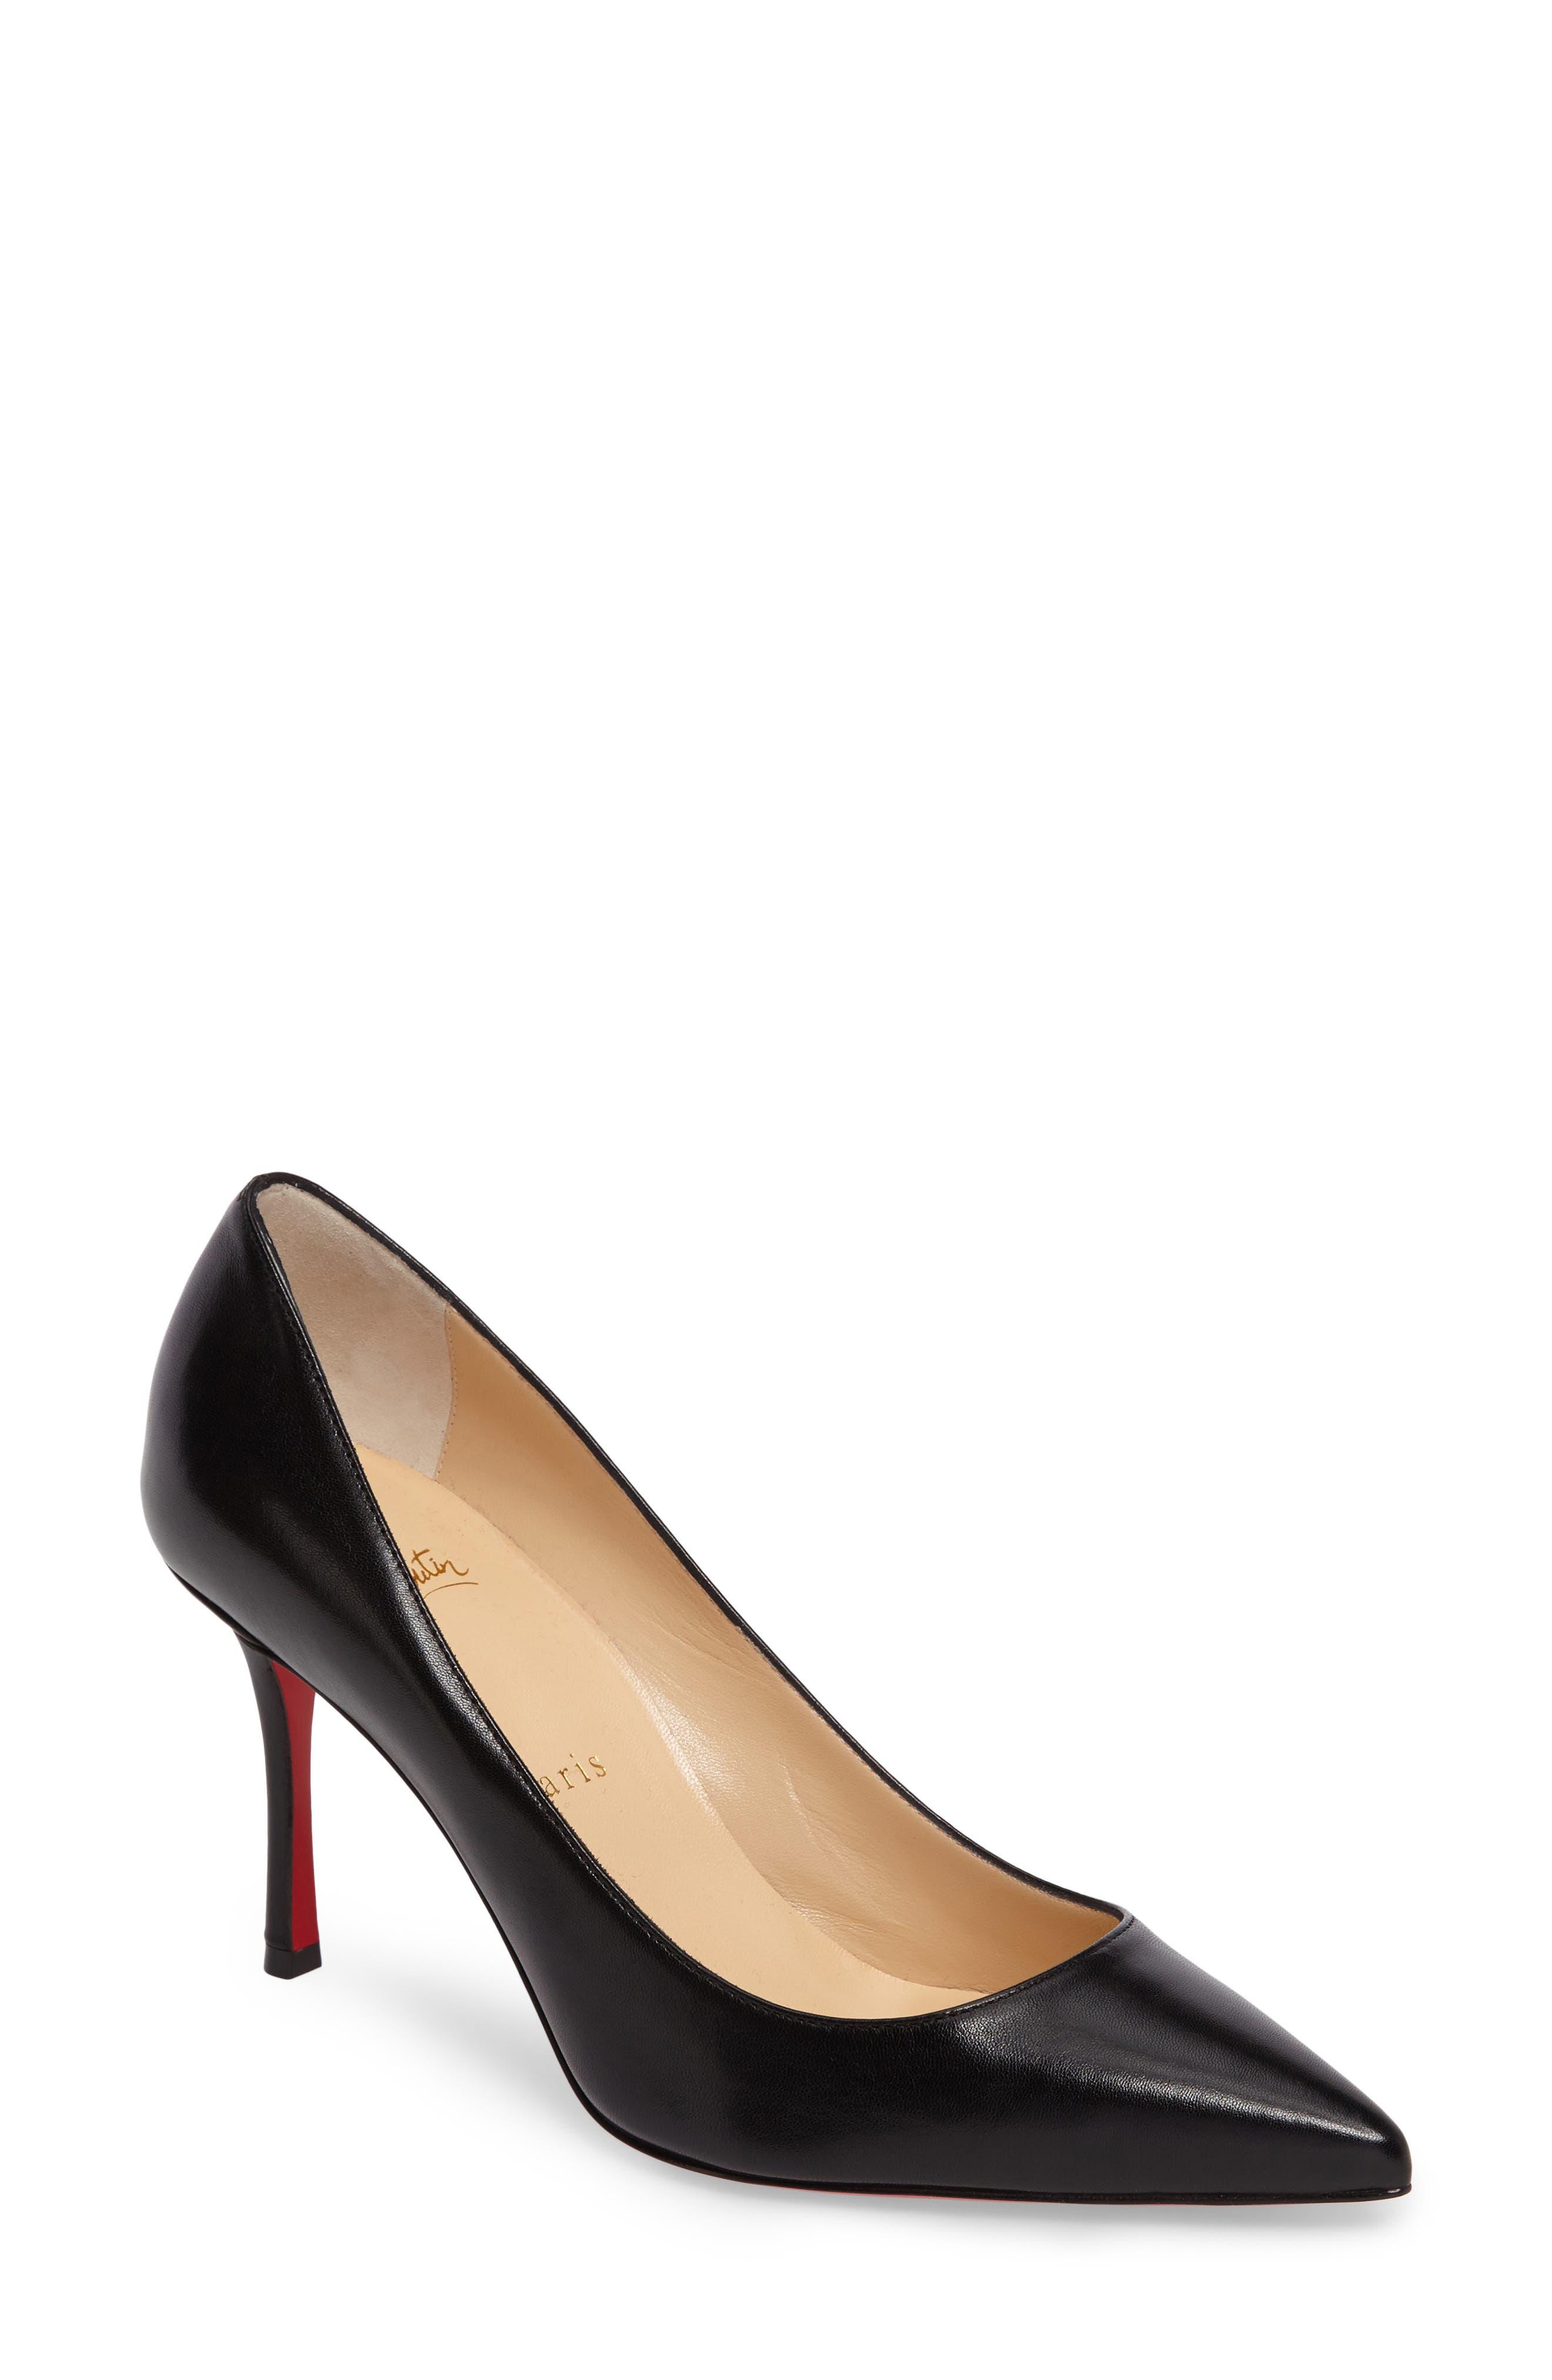 Main Image - Christian Louboutin Decoltish Pointy Toe Pump (Women)